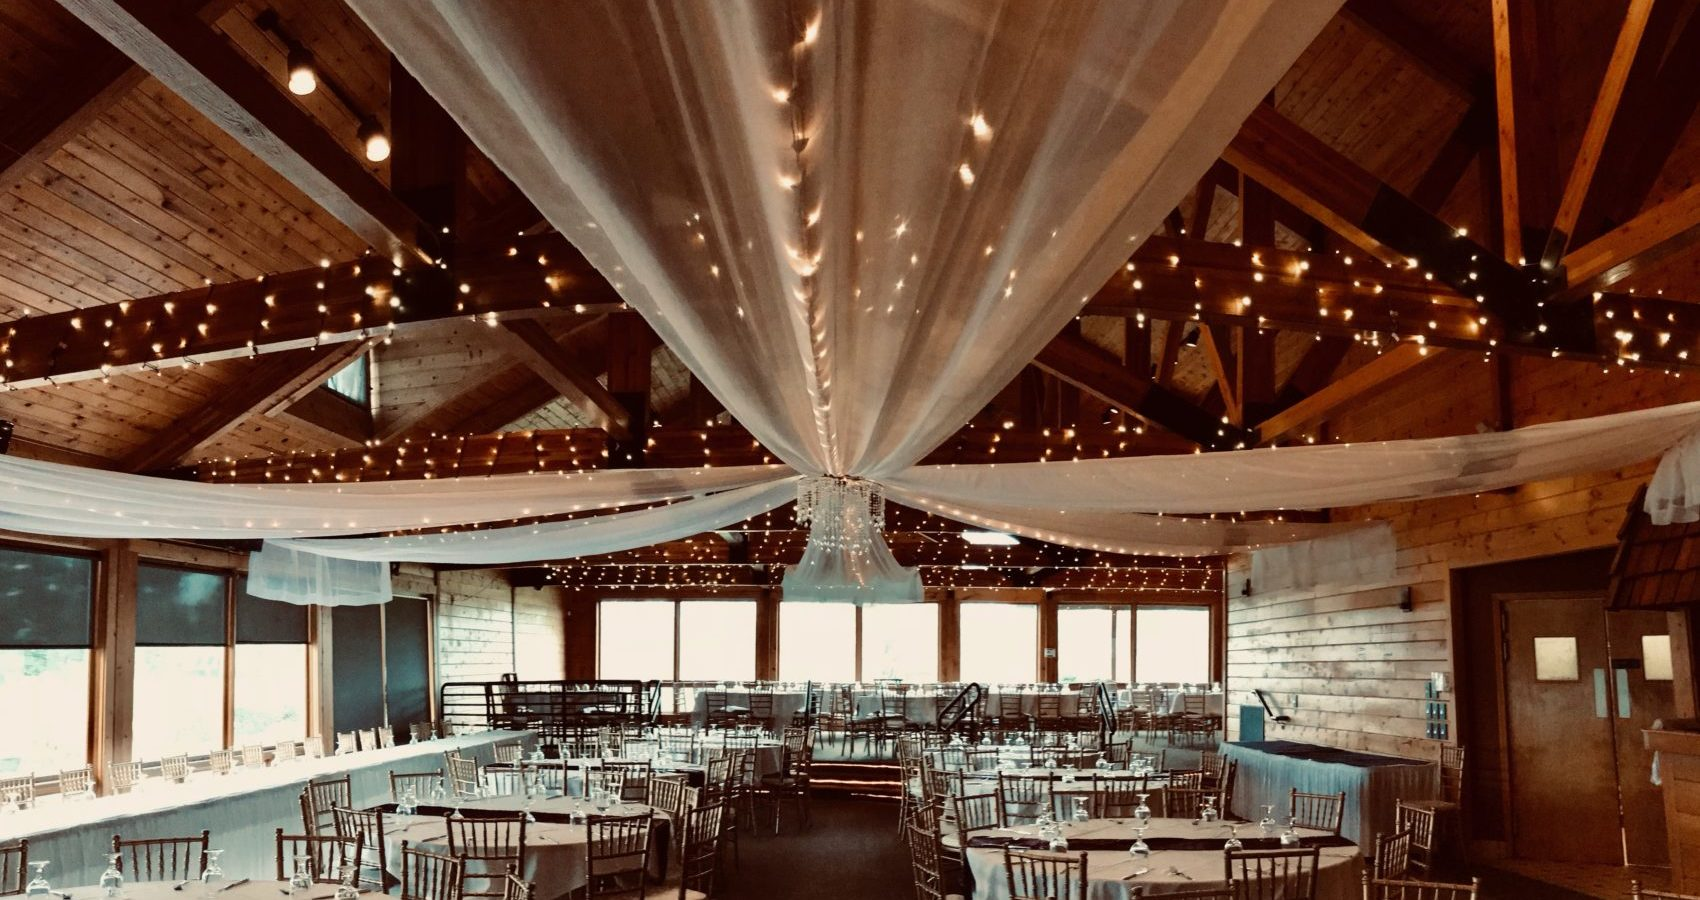 Barn wedding venues near me the Myth banquet hall Oakland county Michigan Macomb county Michigan wedding venues